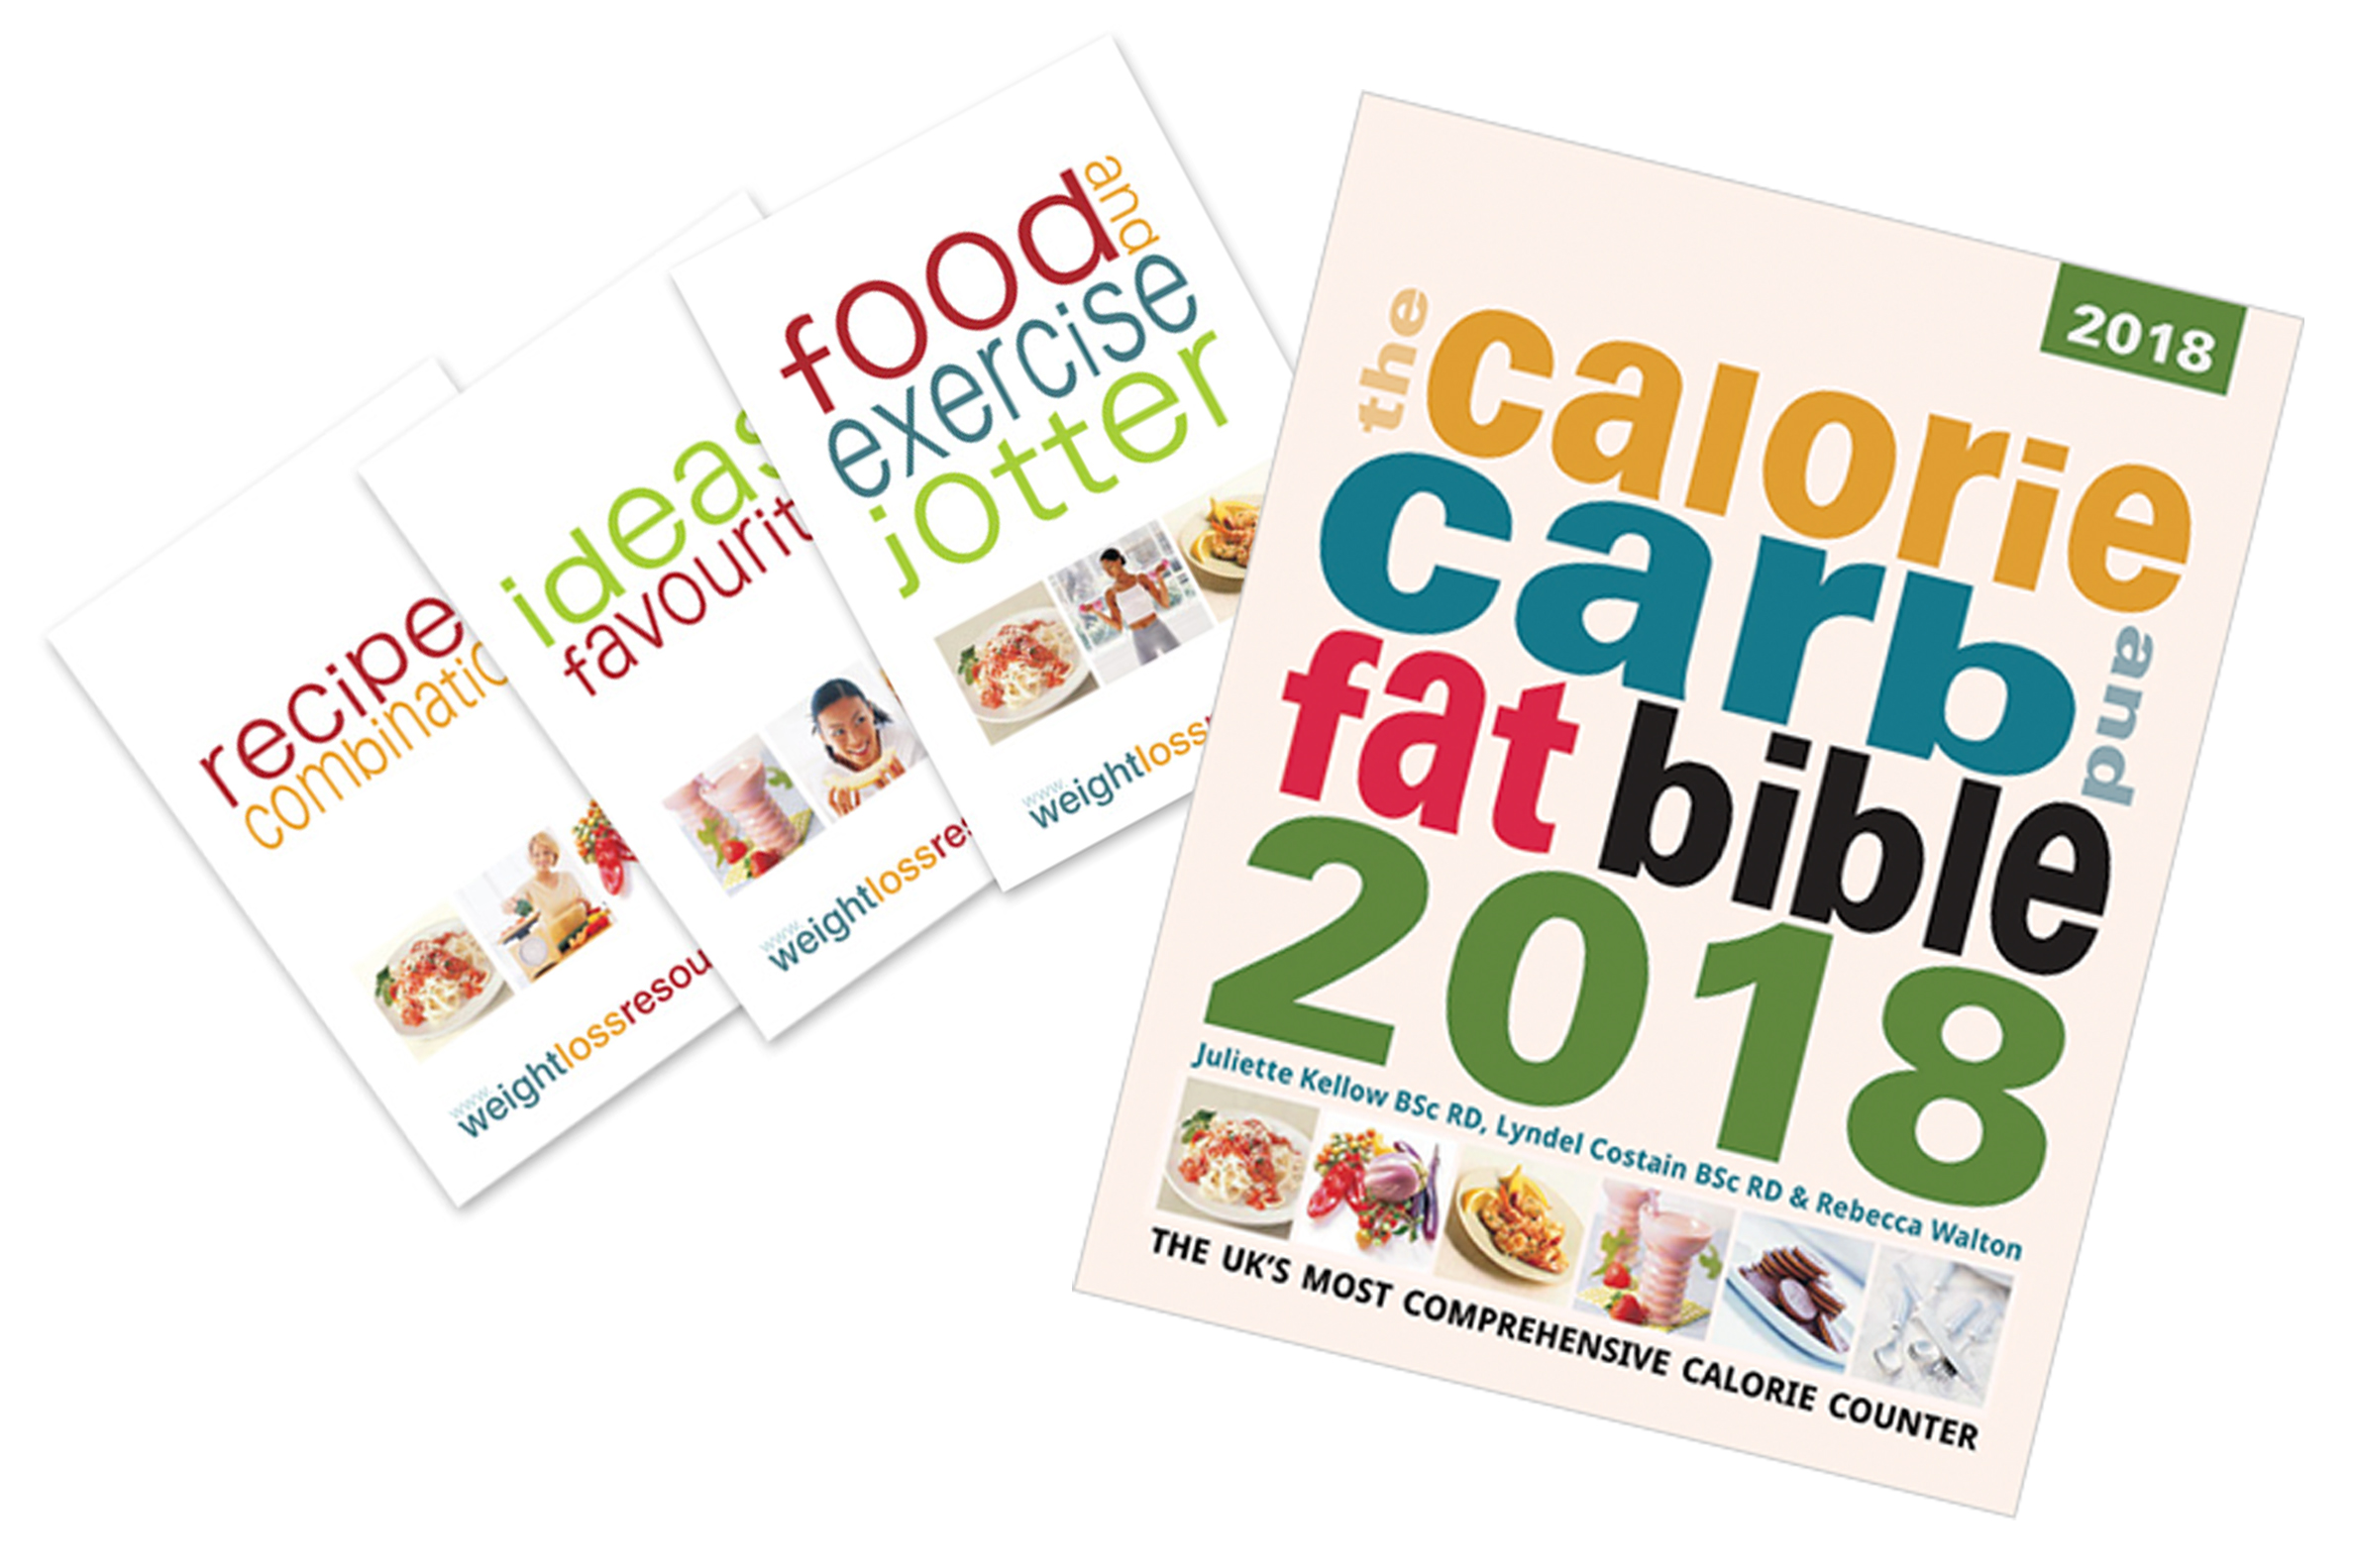 Bundle: Bible 2018 + Calorie Counting Essentials